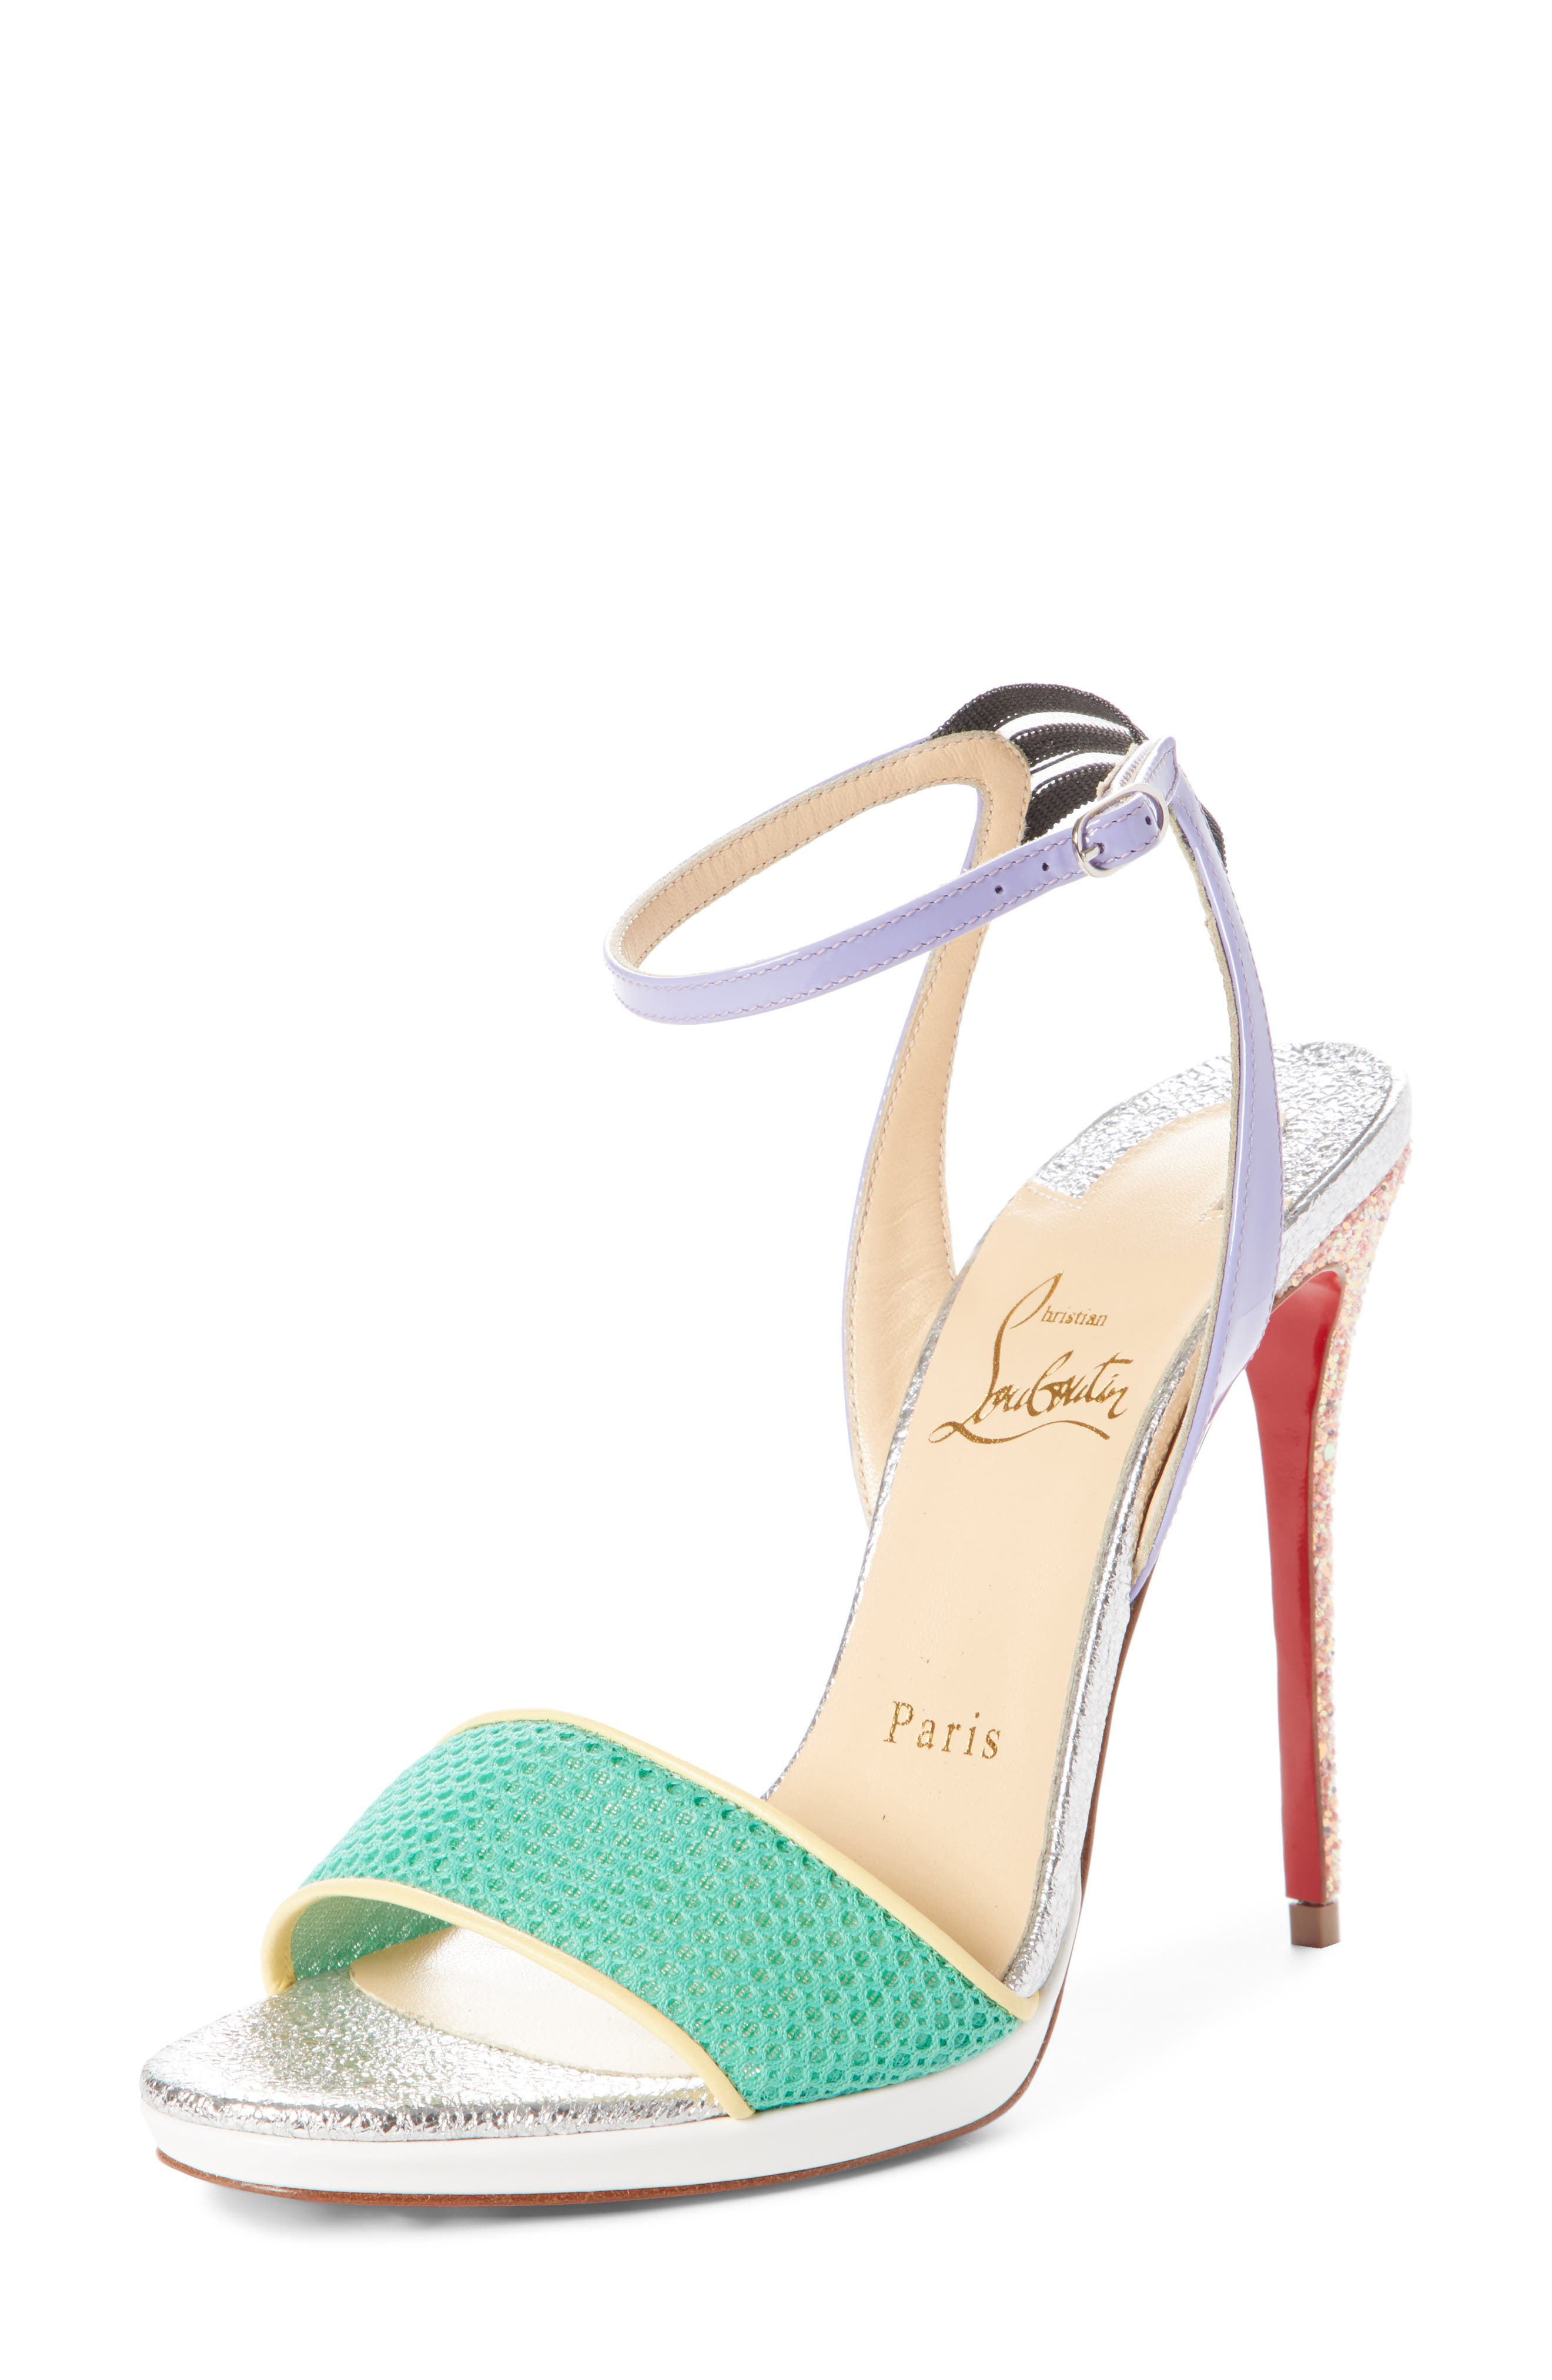 Alternate Image 1 Selected - Christian Louboutin Discoport Textured Sandal (Women)